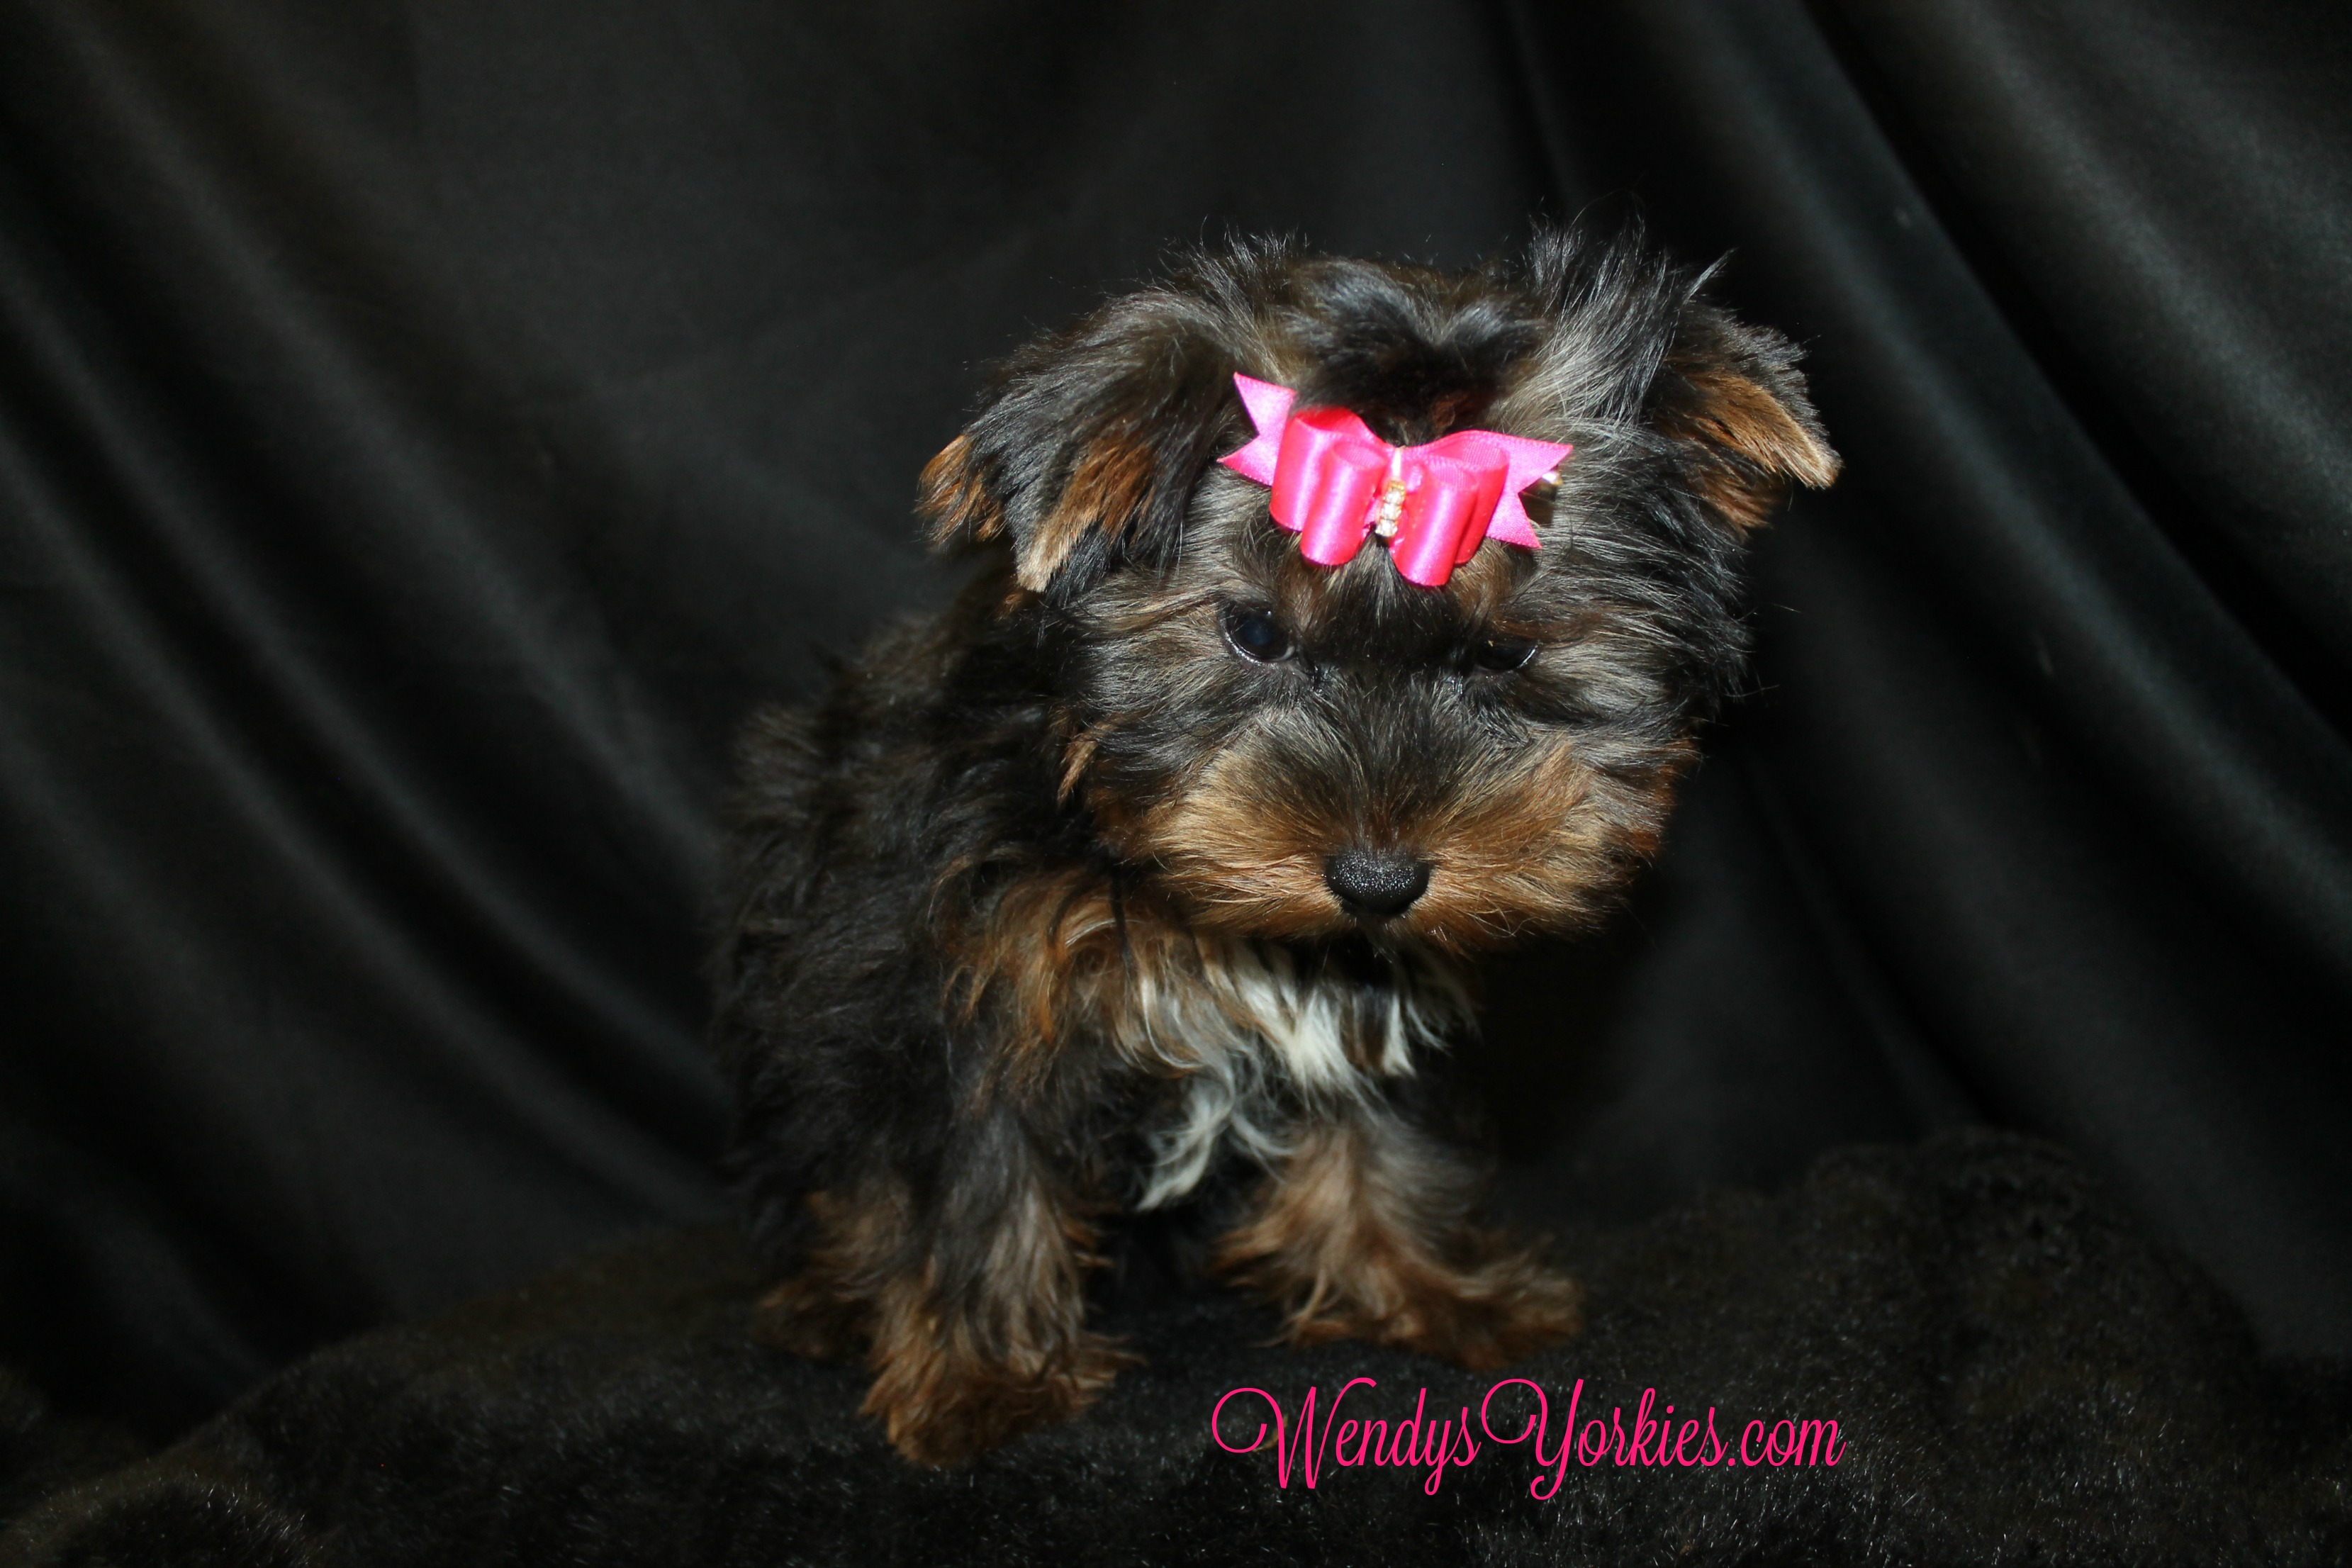 Yorkie puppies for sale, WendysYorkies, ChanelFancy